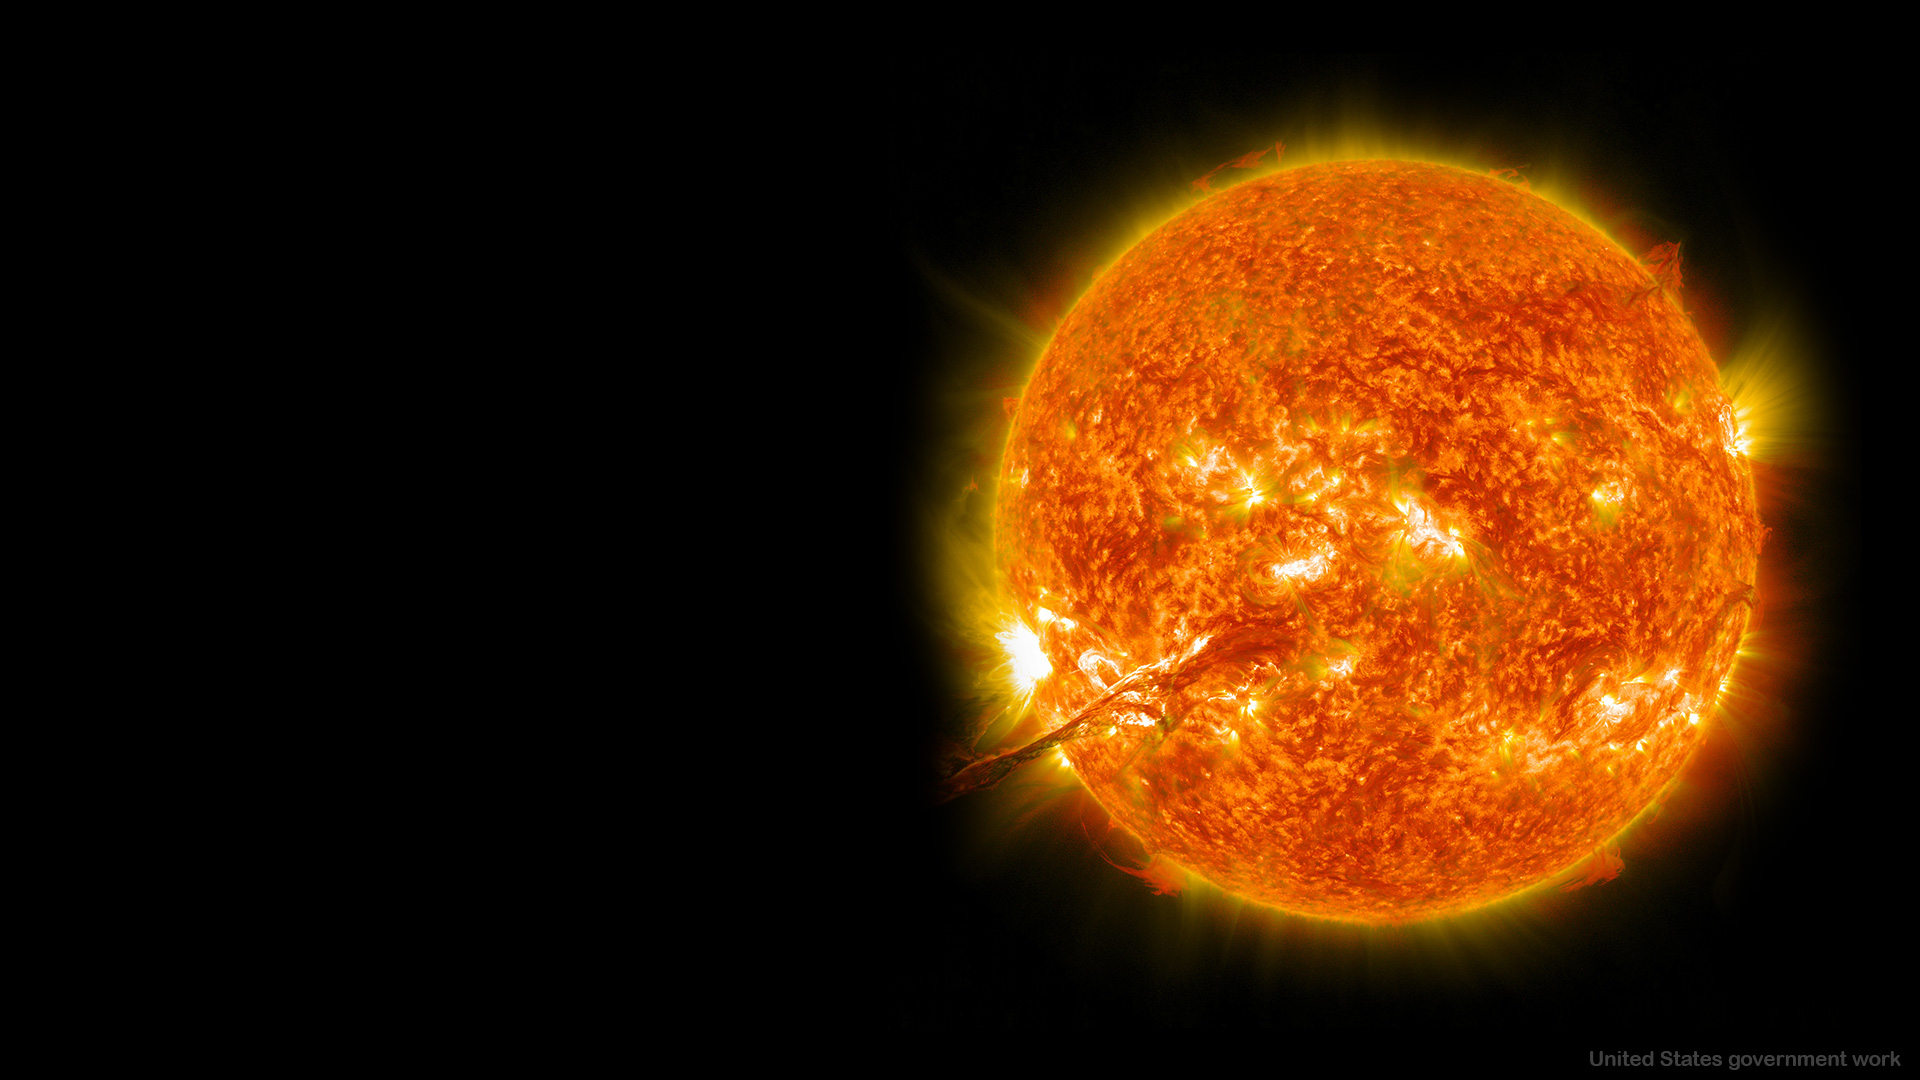 Sun background for Google Slides Themes and Presentations